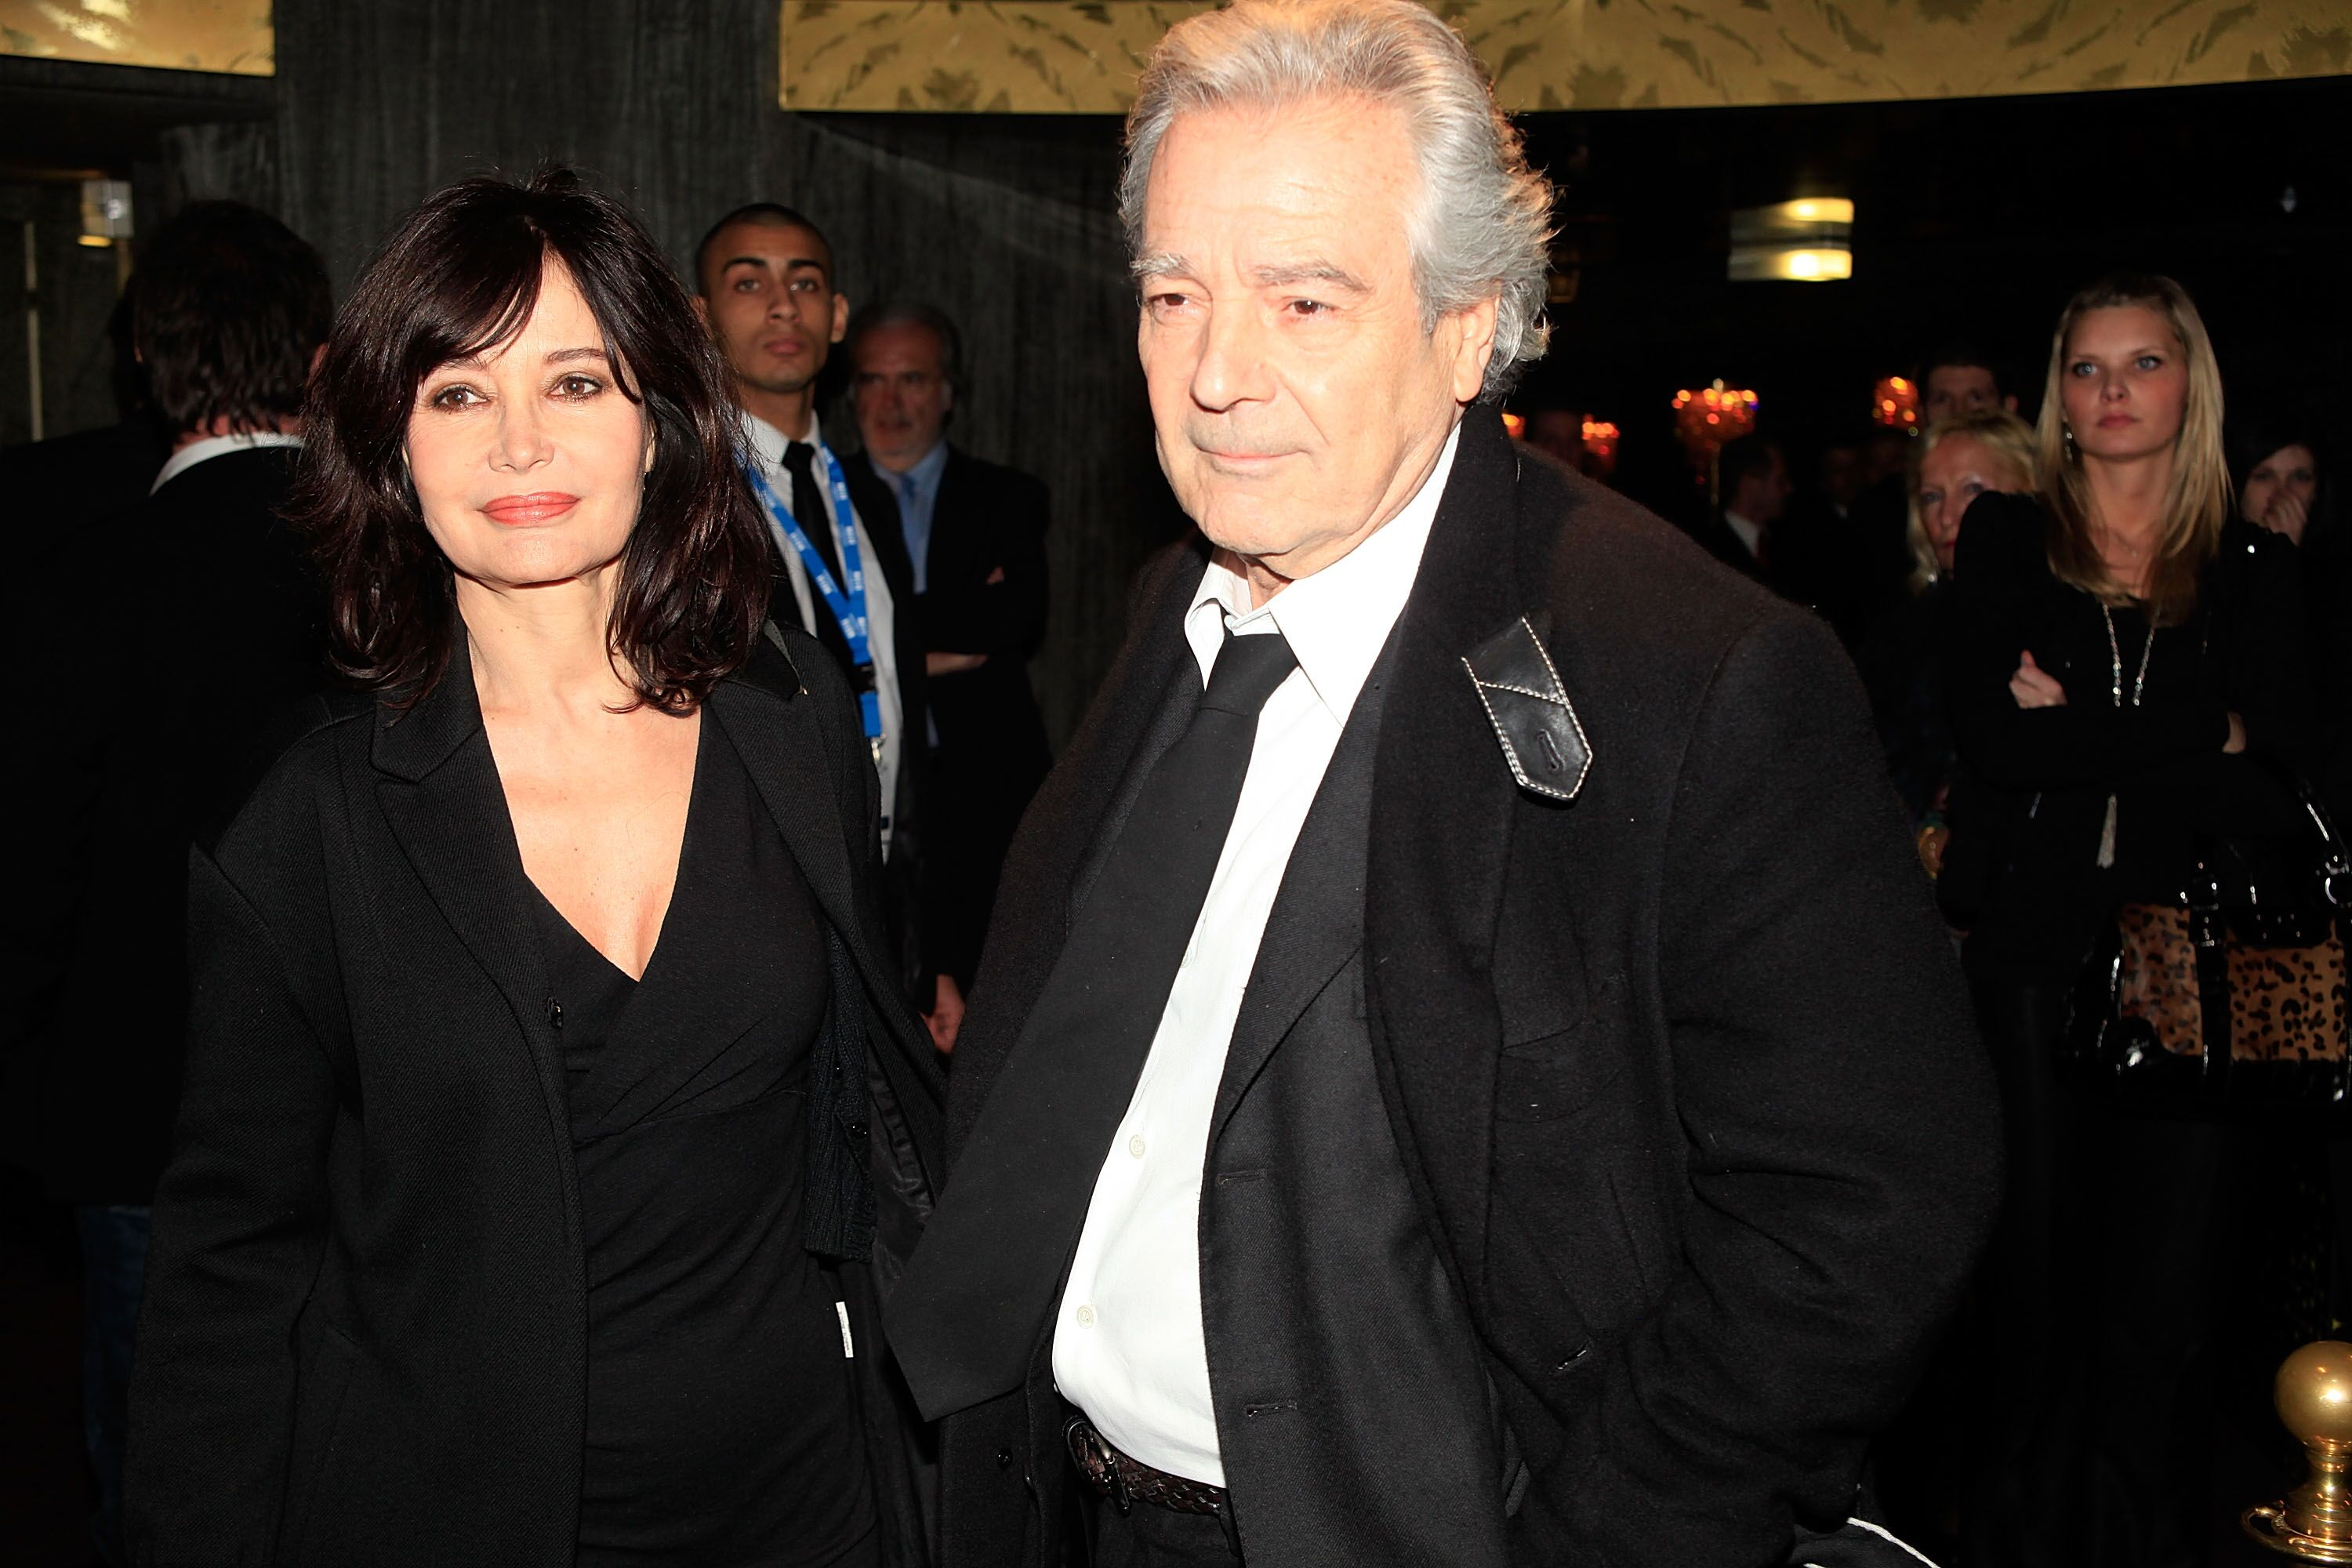 Pierre Arditi et son épouse Evelyne Bouix assistent aux Globes de Cristal 2011 au Lido à Paris, France. | Photo : Getty Images